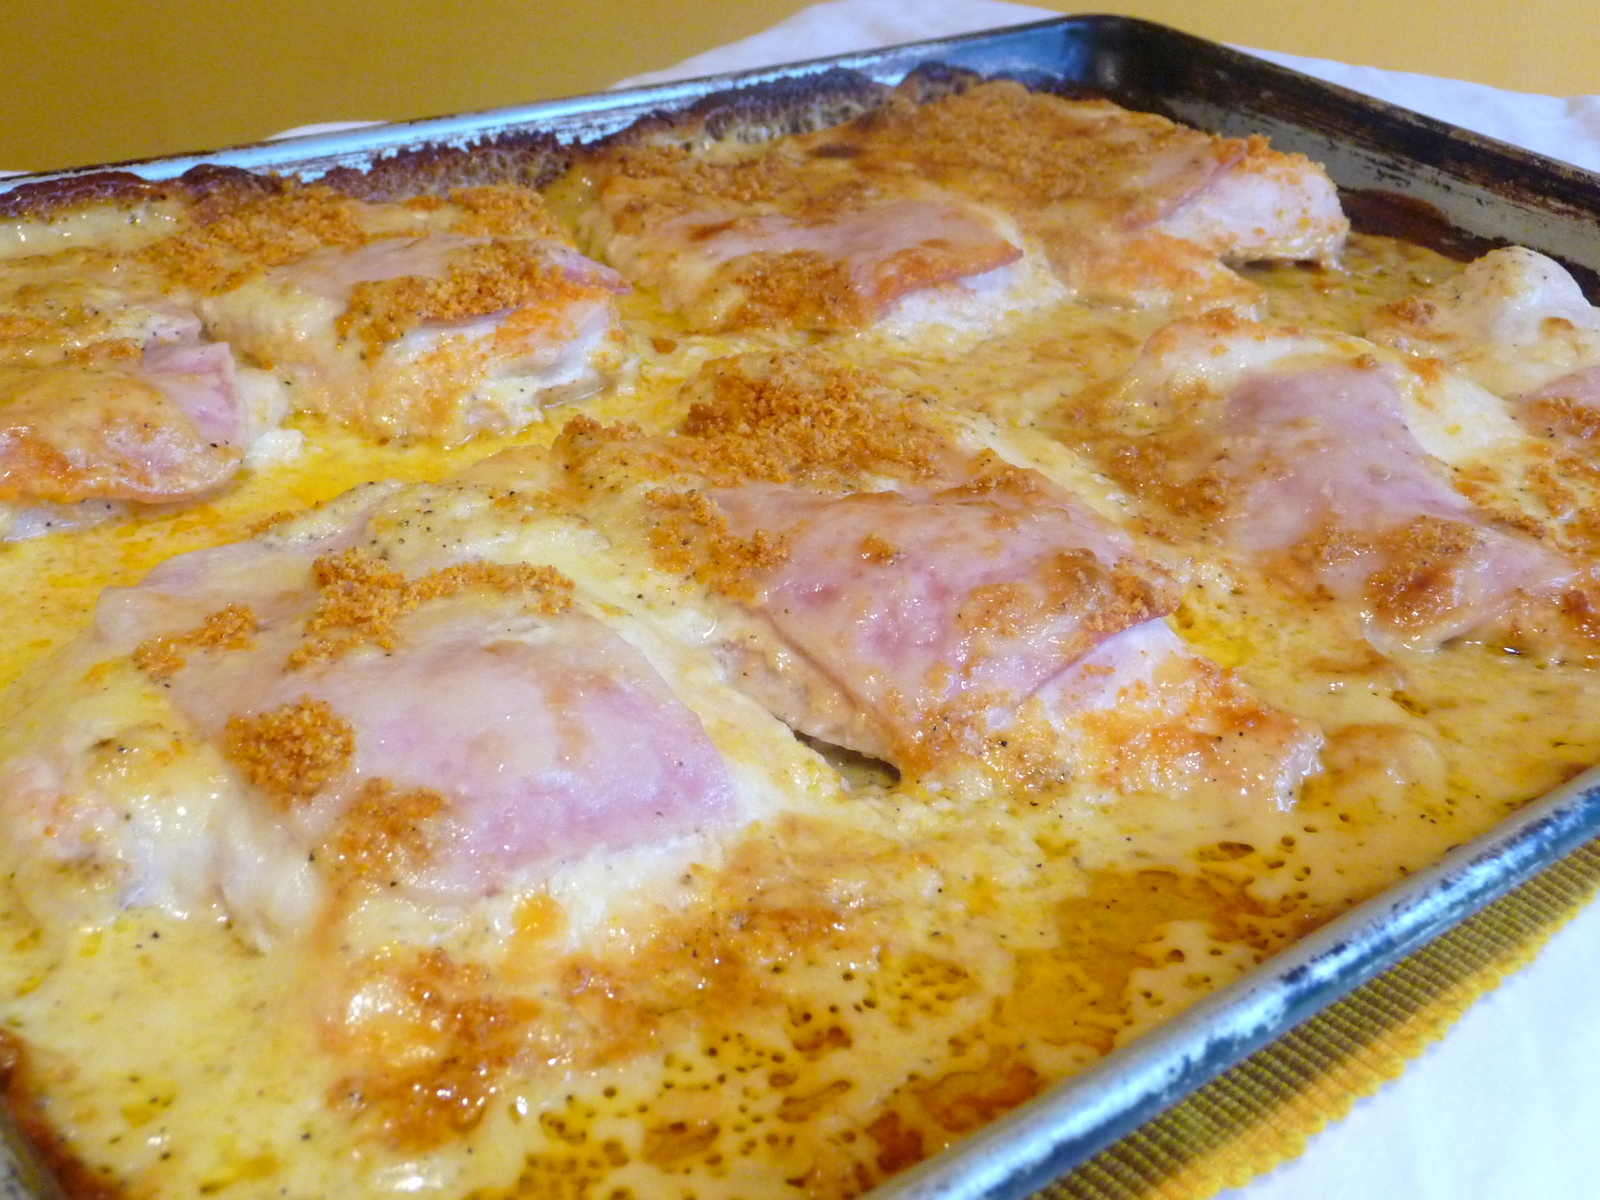 SPLENDID LOW-CARBING BY JENNIFER ELOFF: SWISS CHICKEN BAKE